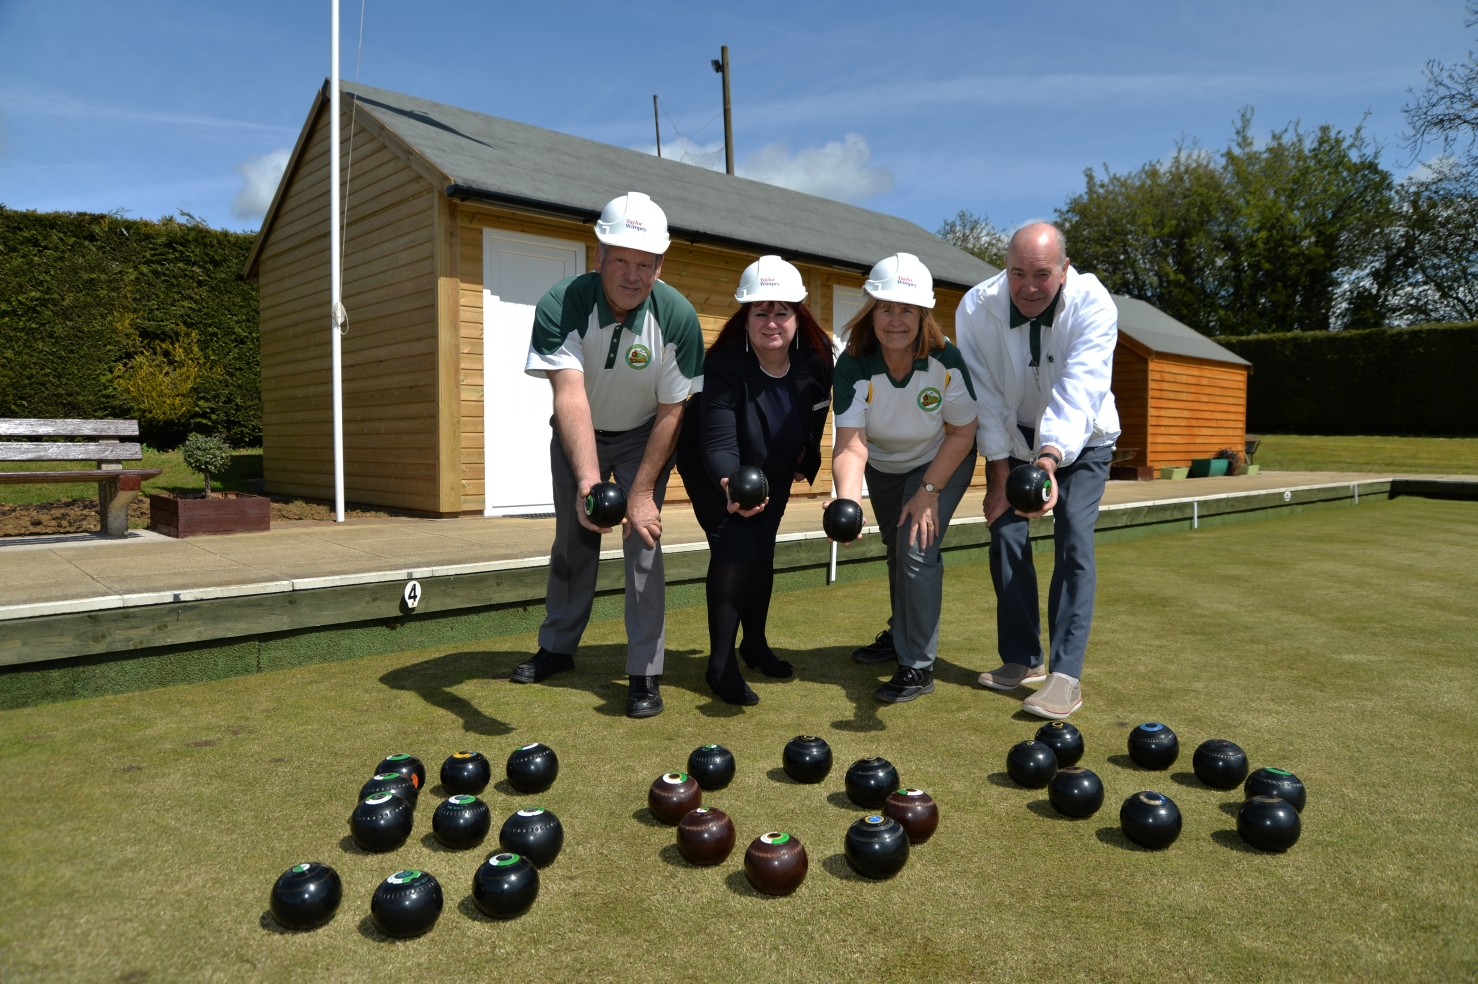 Taylor Wimpey - Woodford Meadows - Woodford Cum Membris Bowls Club - MAY16